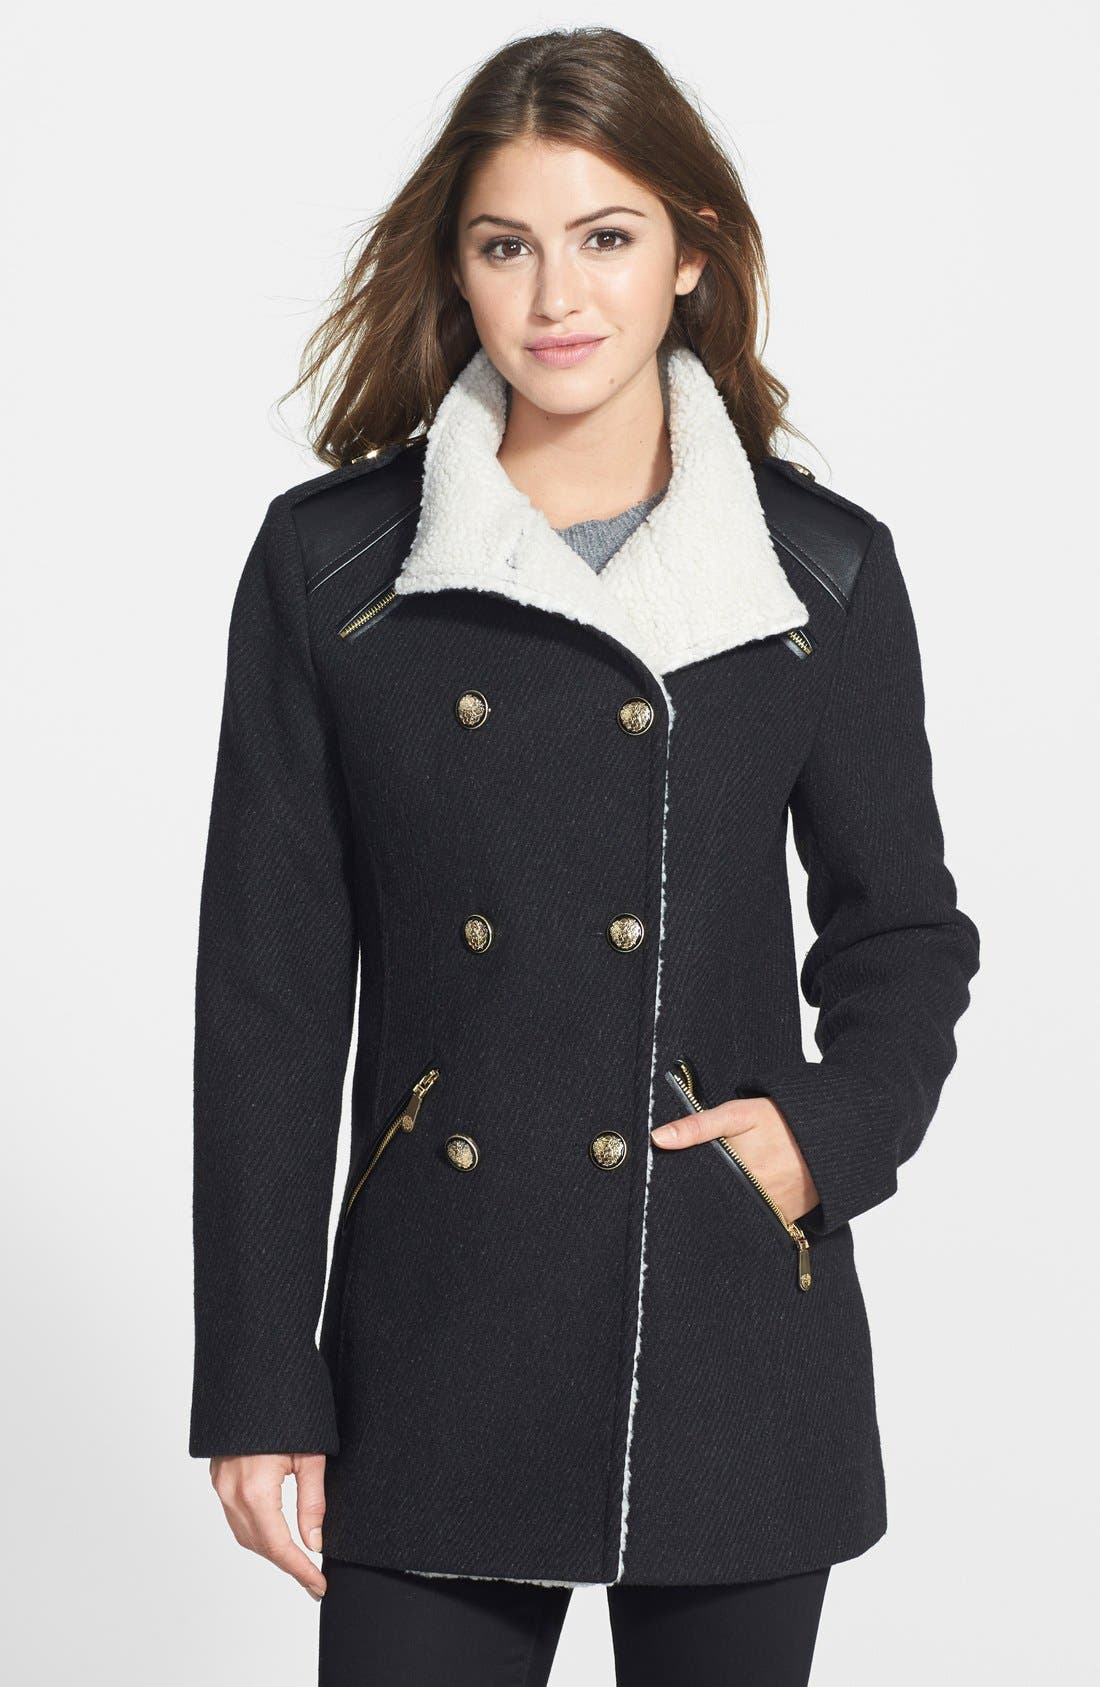 Alternate Image 1 Selected - Vince Camuto Textured Double Breasted Wool Blend Coat (Online Only)